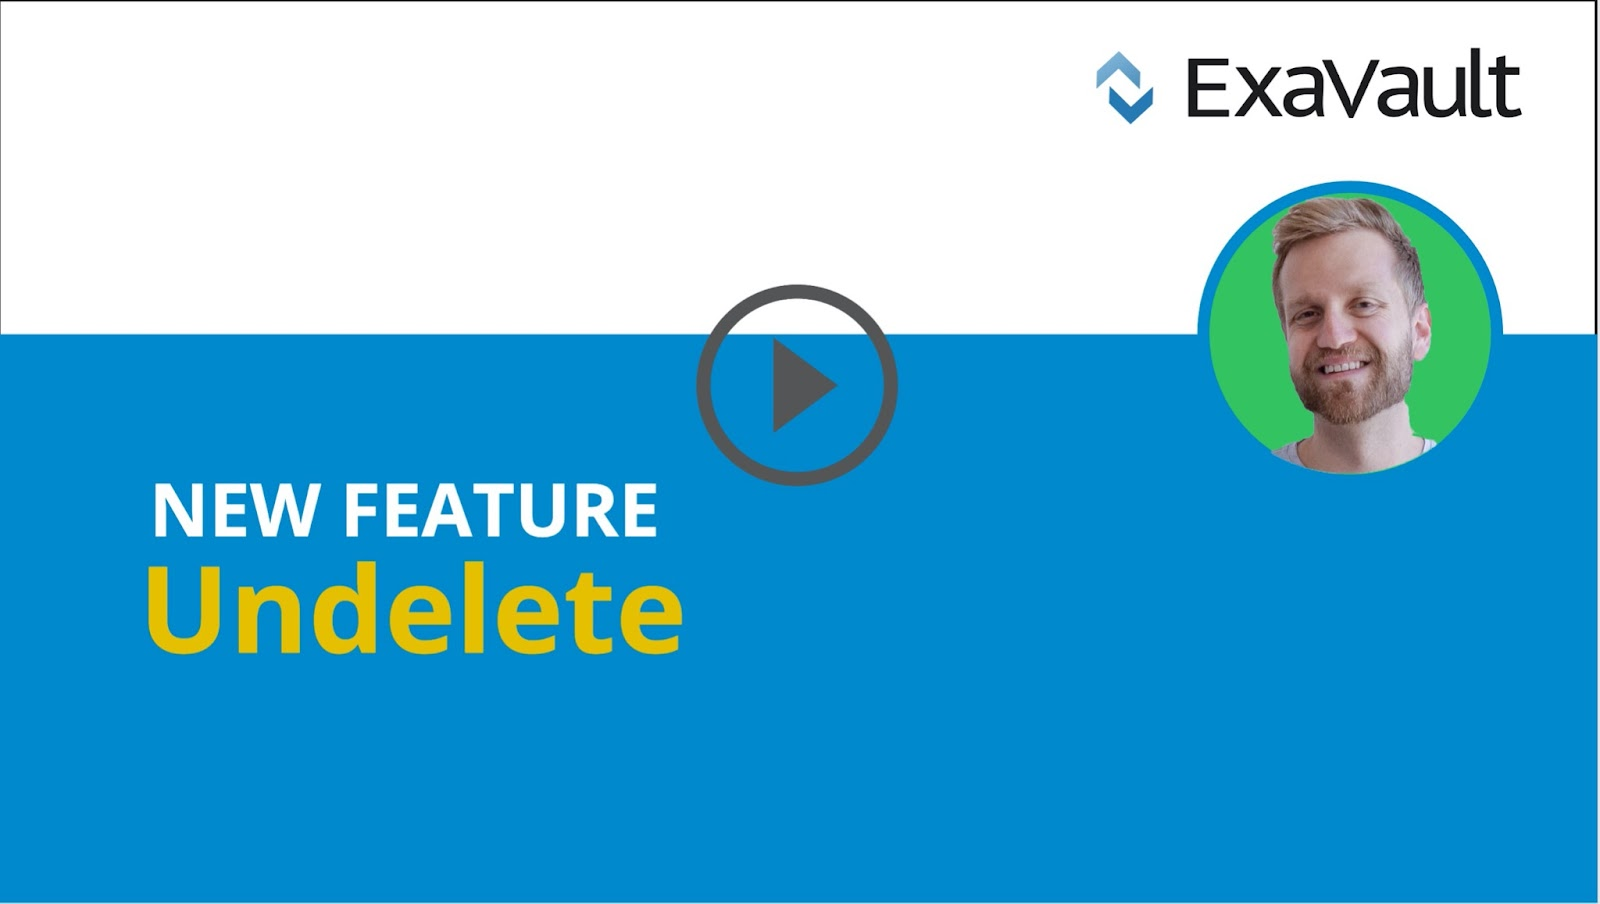 Video thumbnail for new undelete feature announcement.